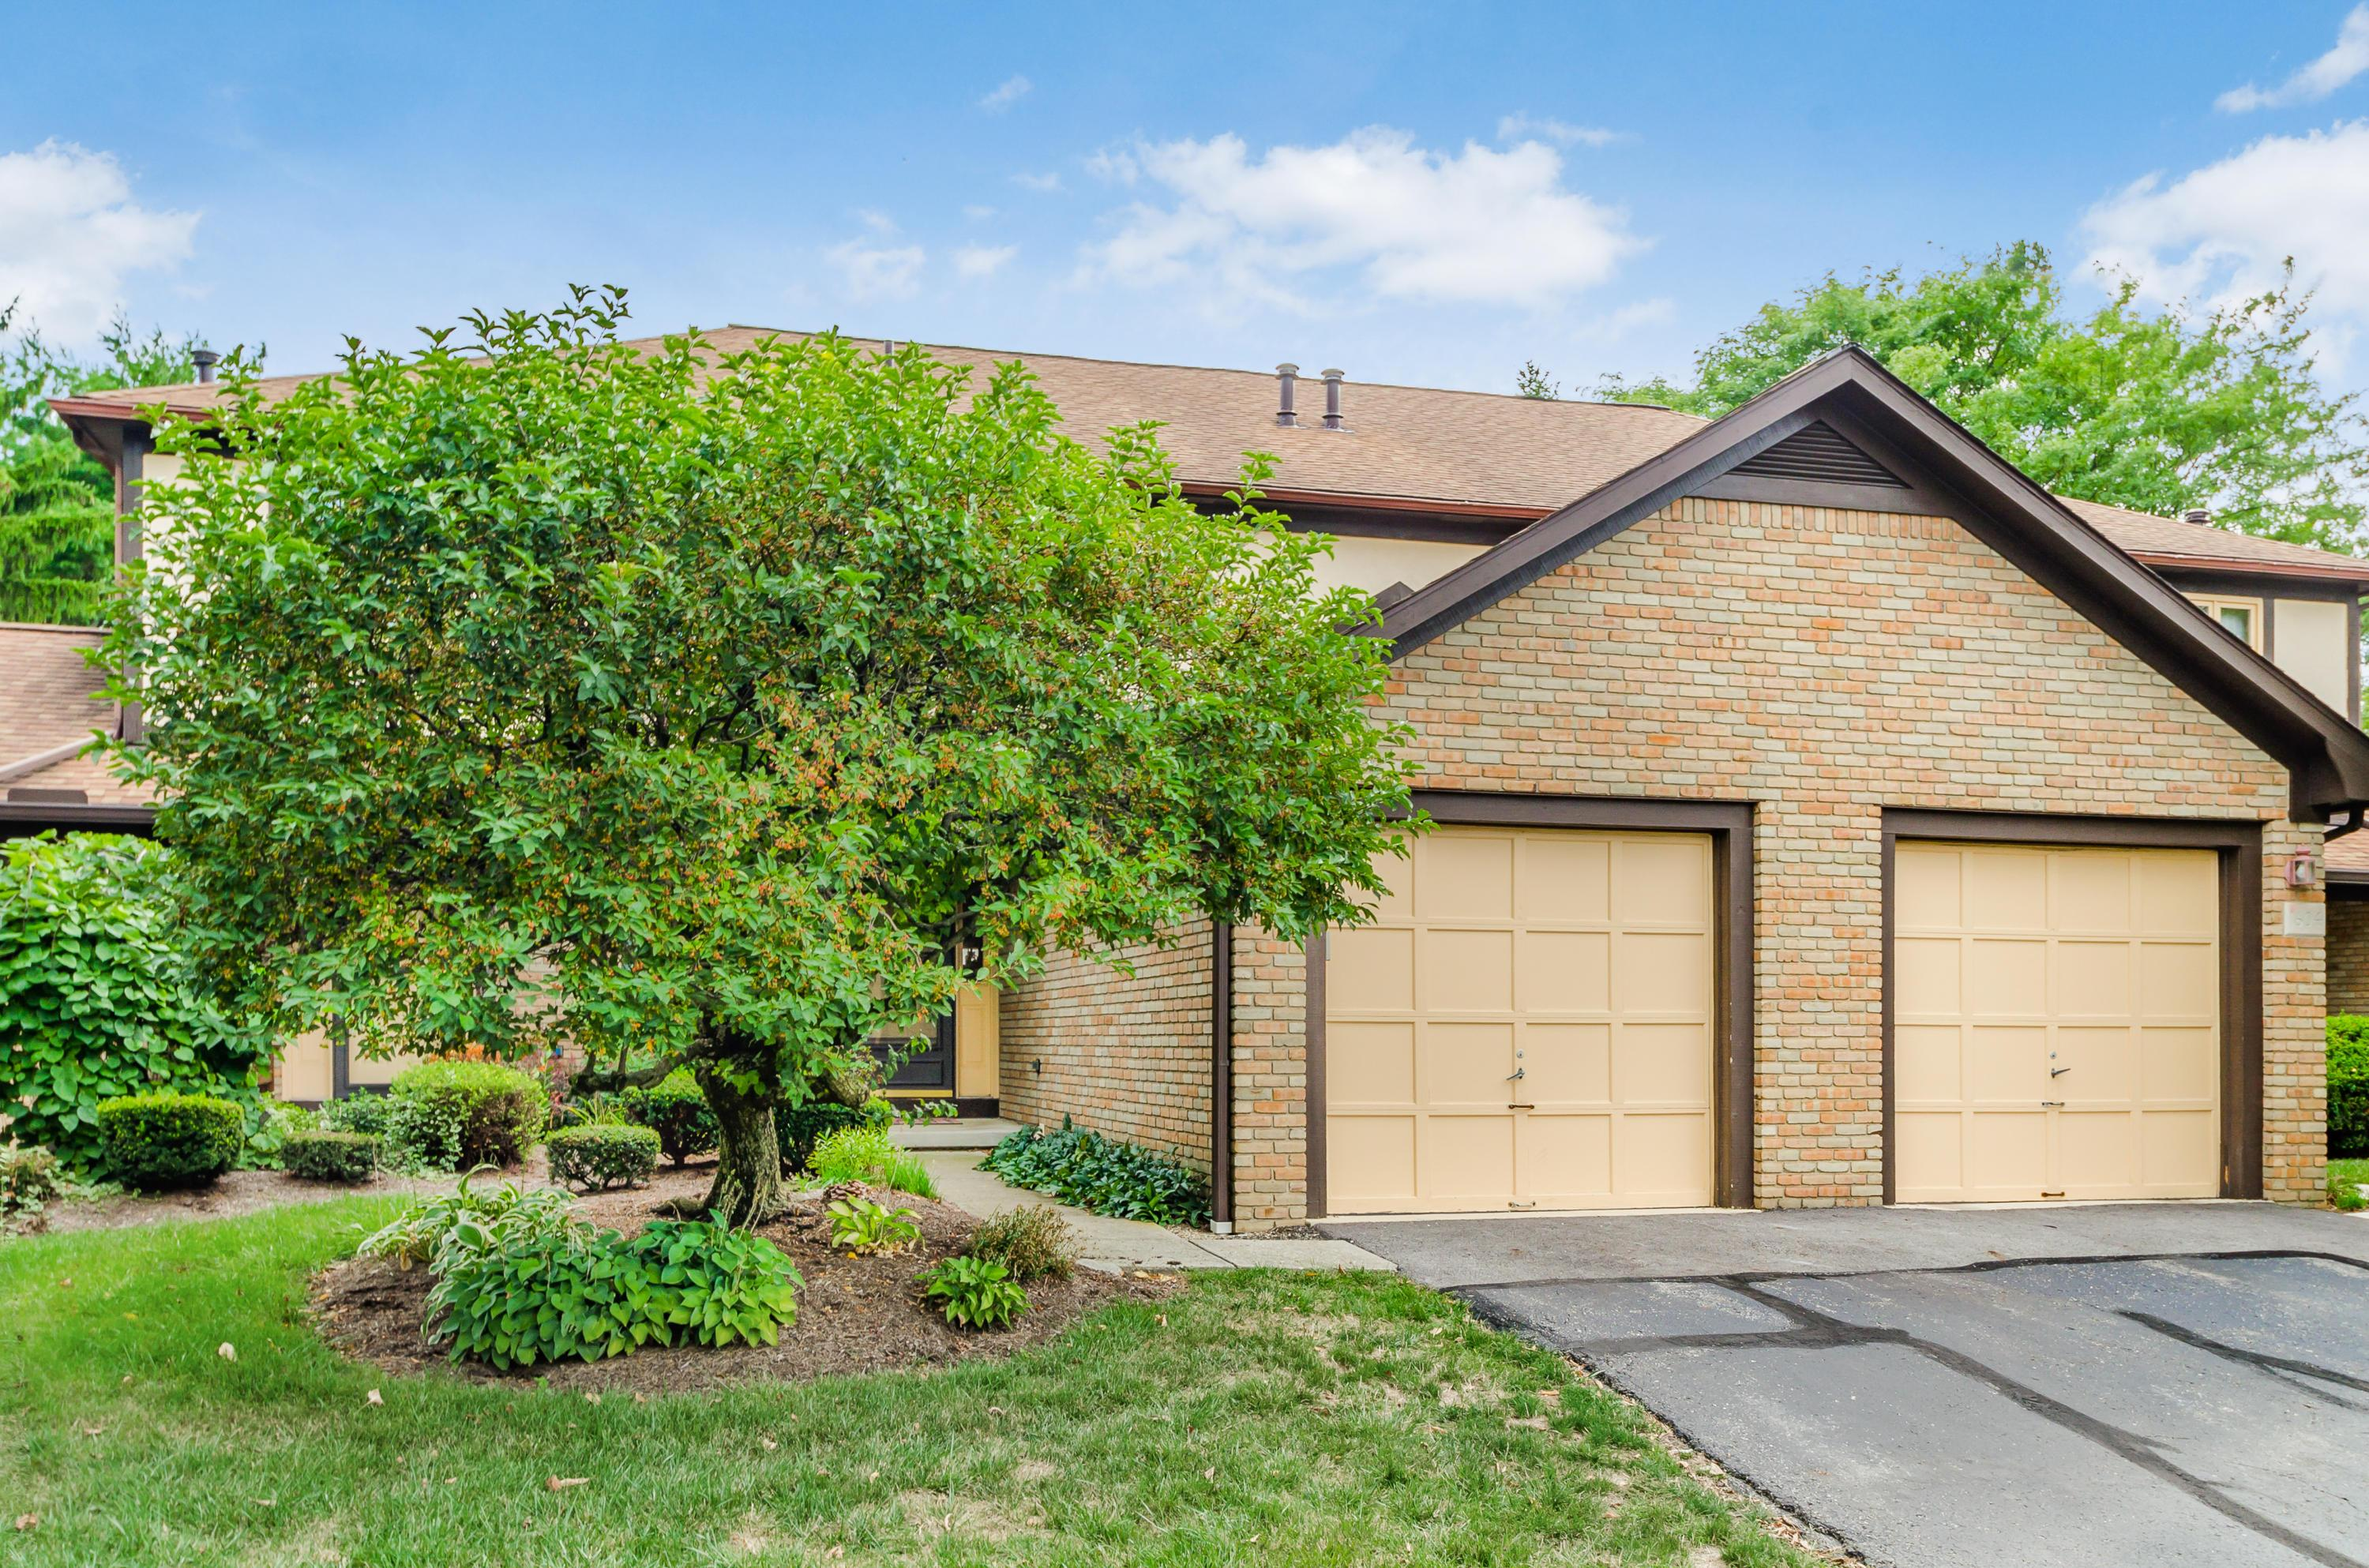 1602 Six Point Court, Worthington, Ohio 43085, 2 Bedrooms Bedrooms, ,2 BathroomsBathrooms,Residential,For Sale,Six Point,220031687